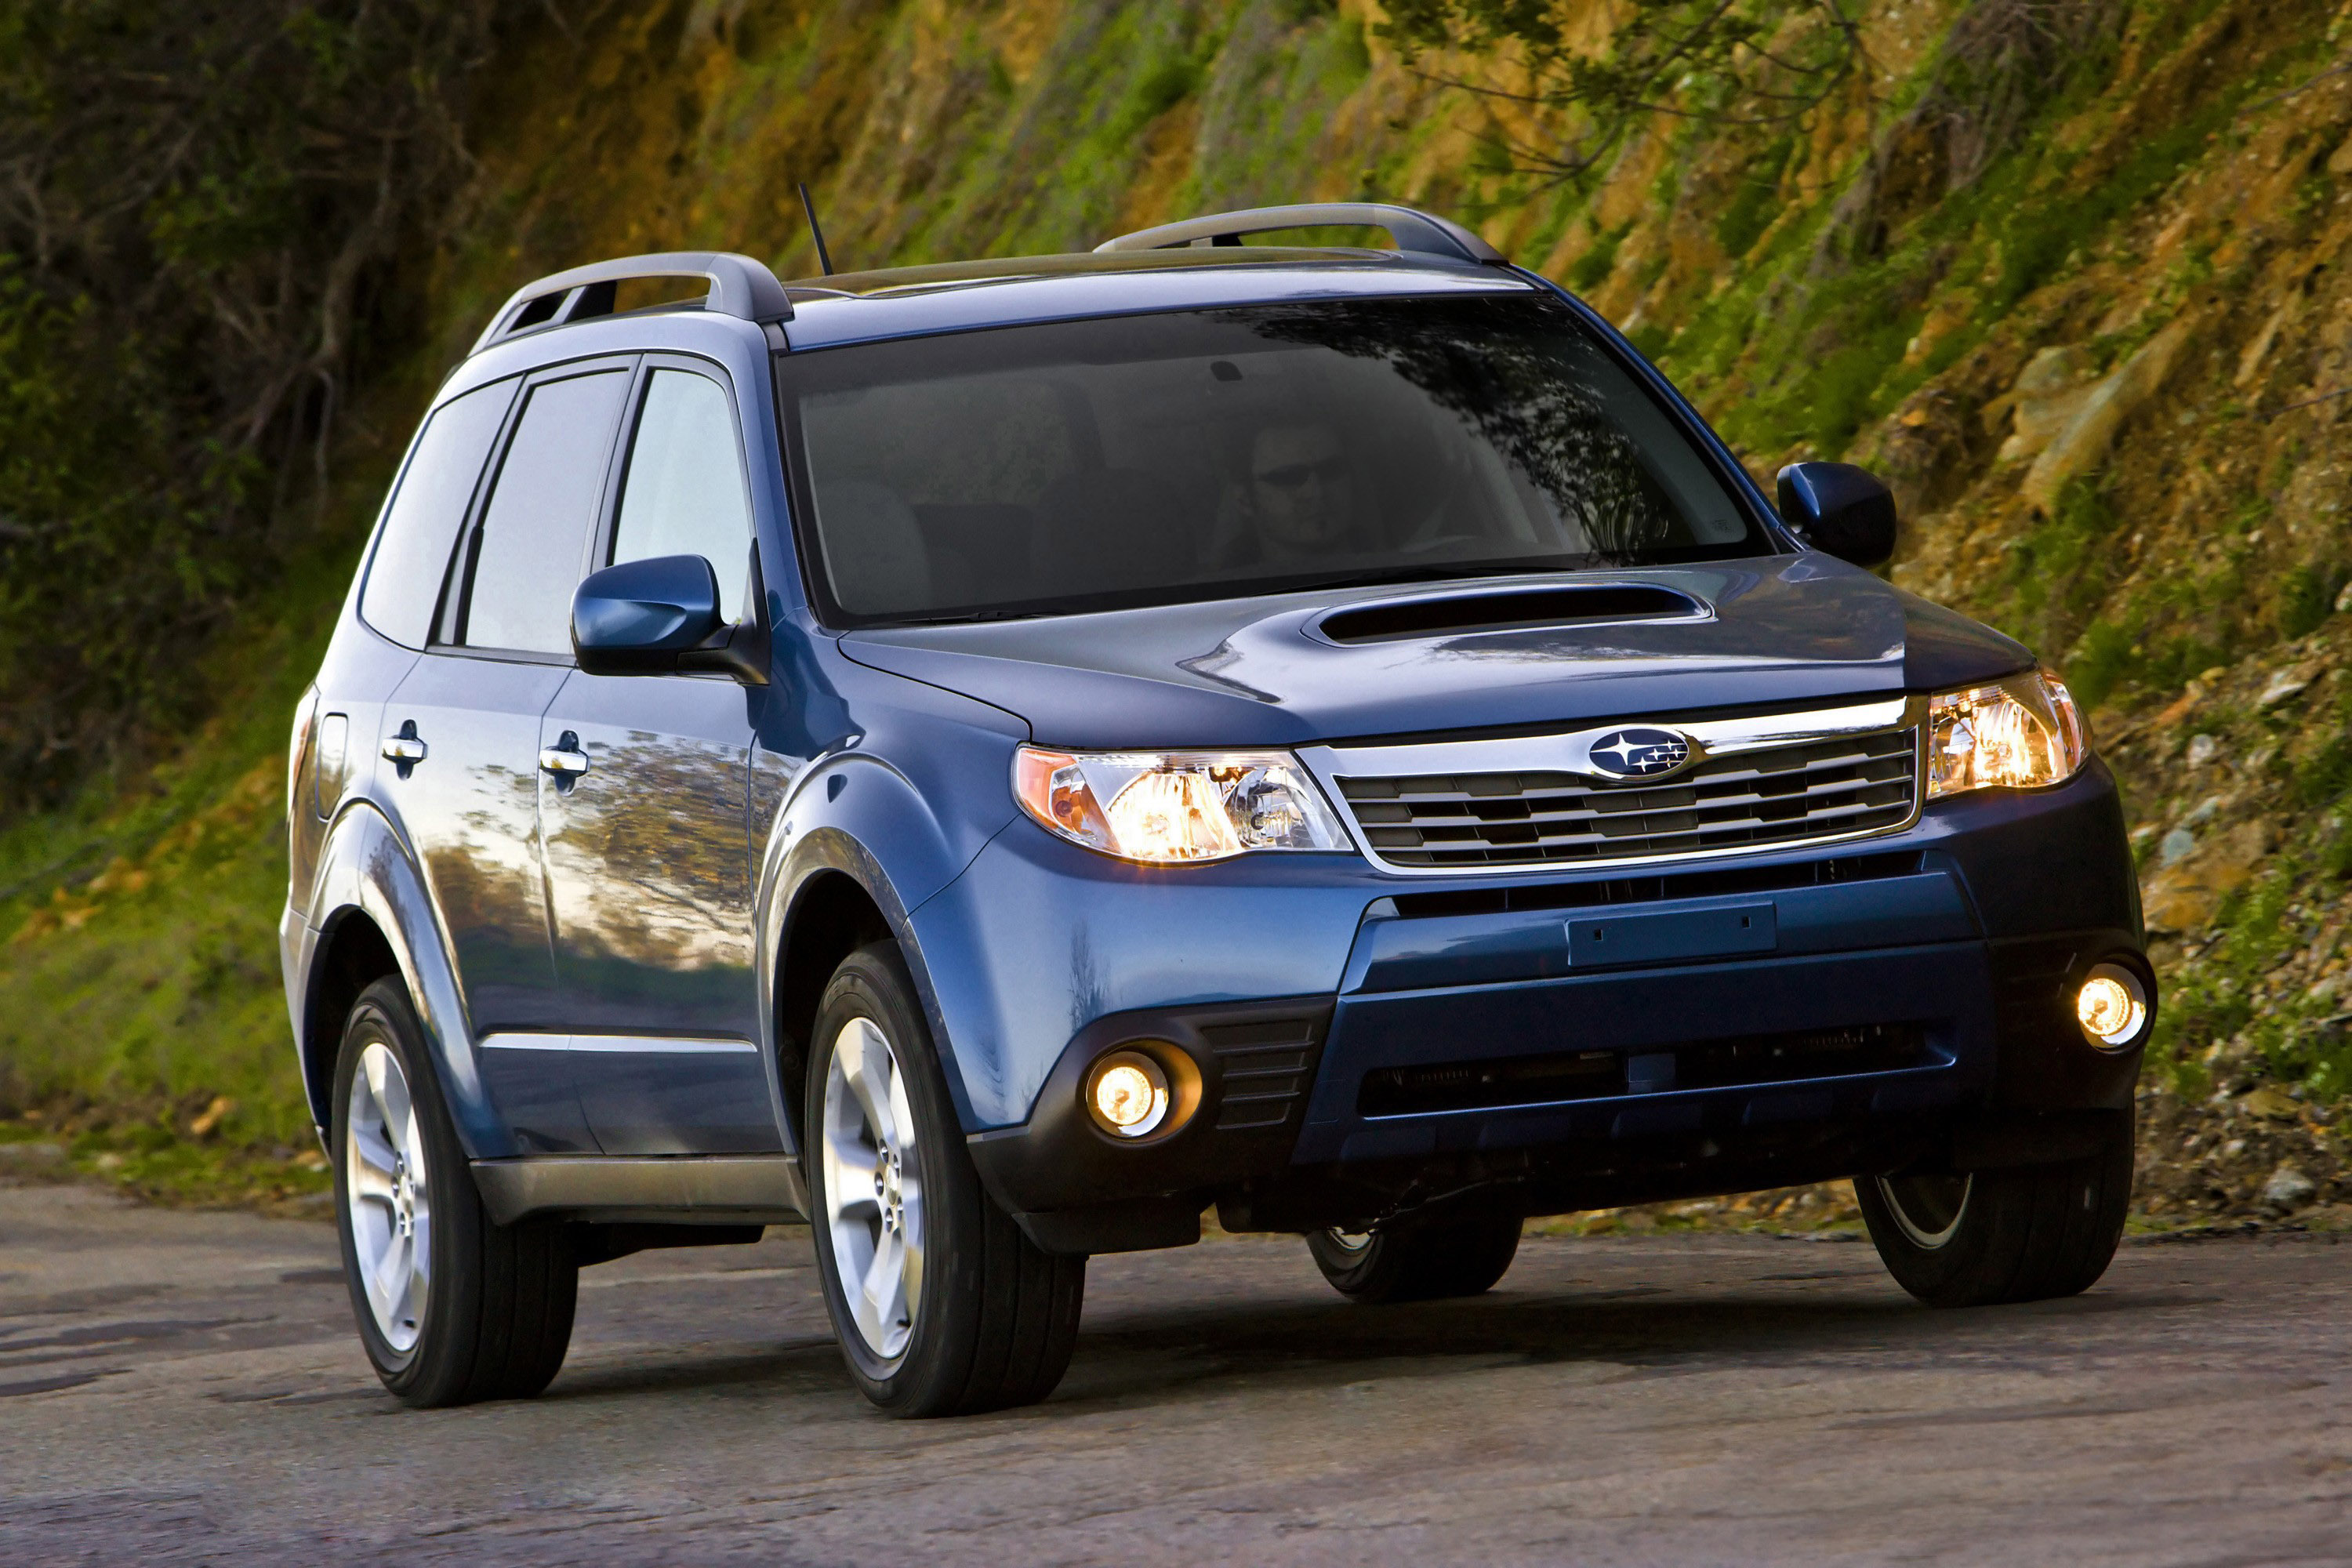 2011 Subaru Forester Price Details Revealed